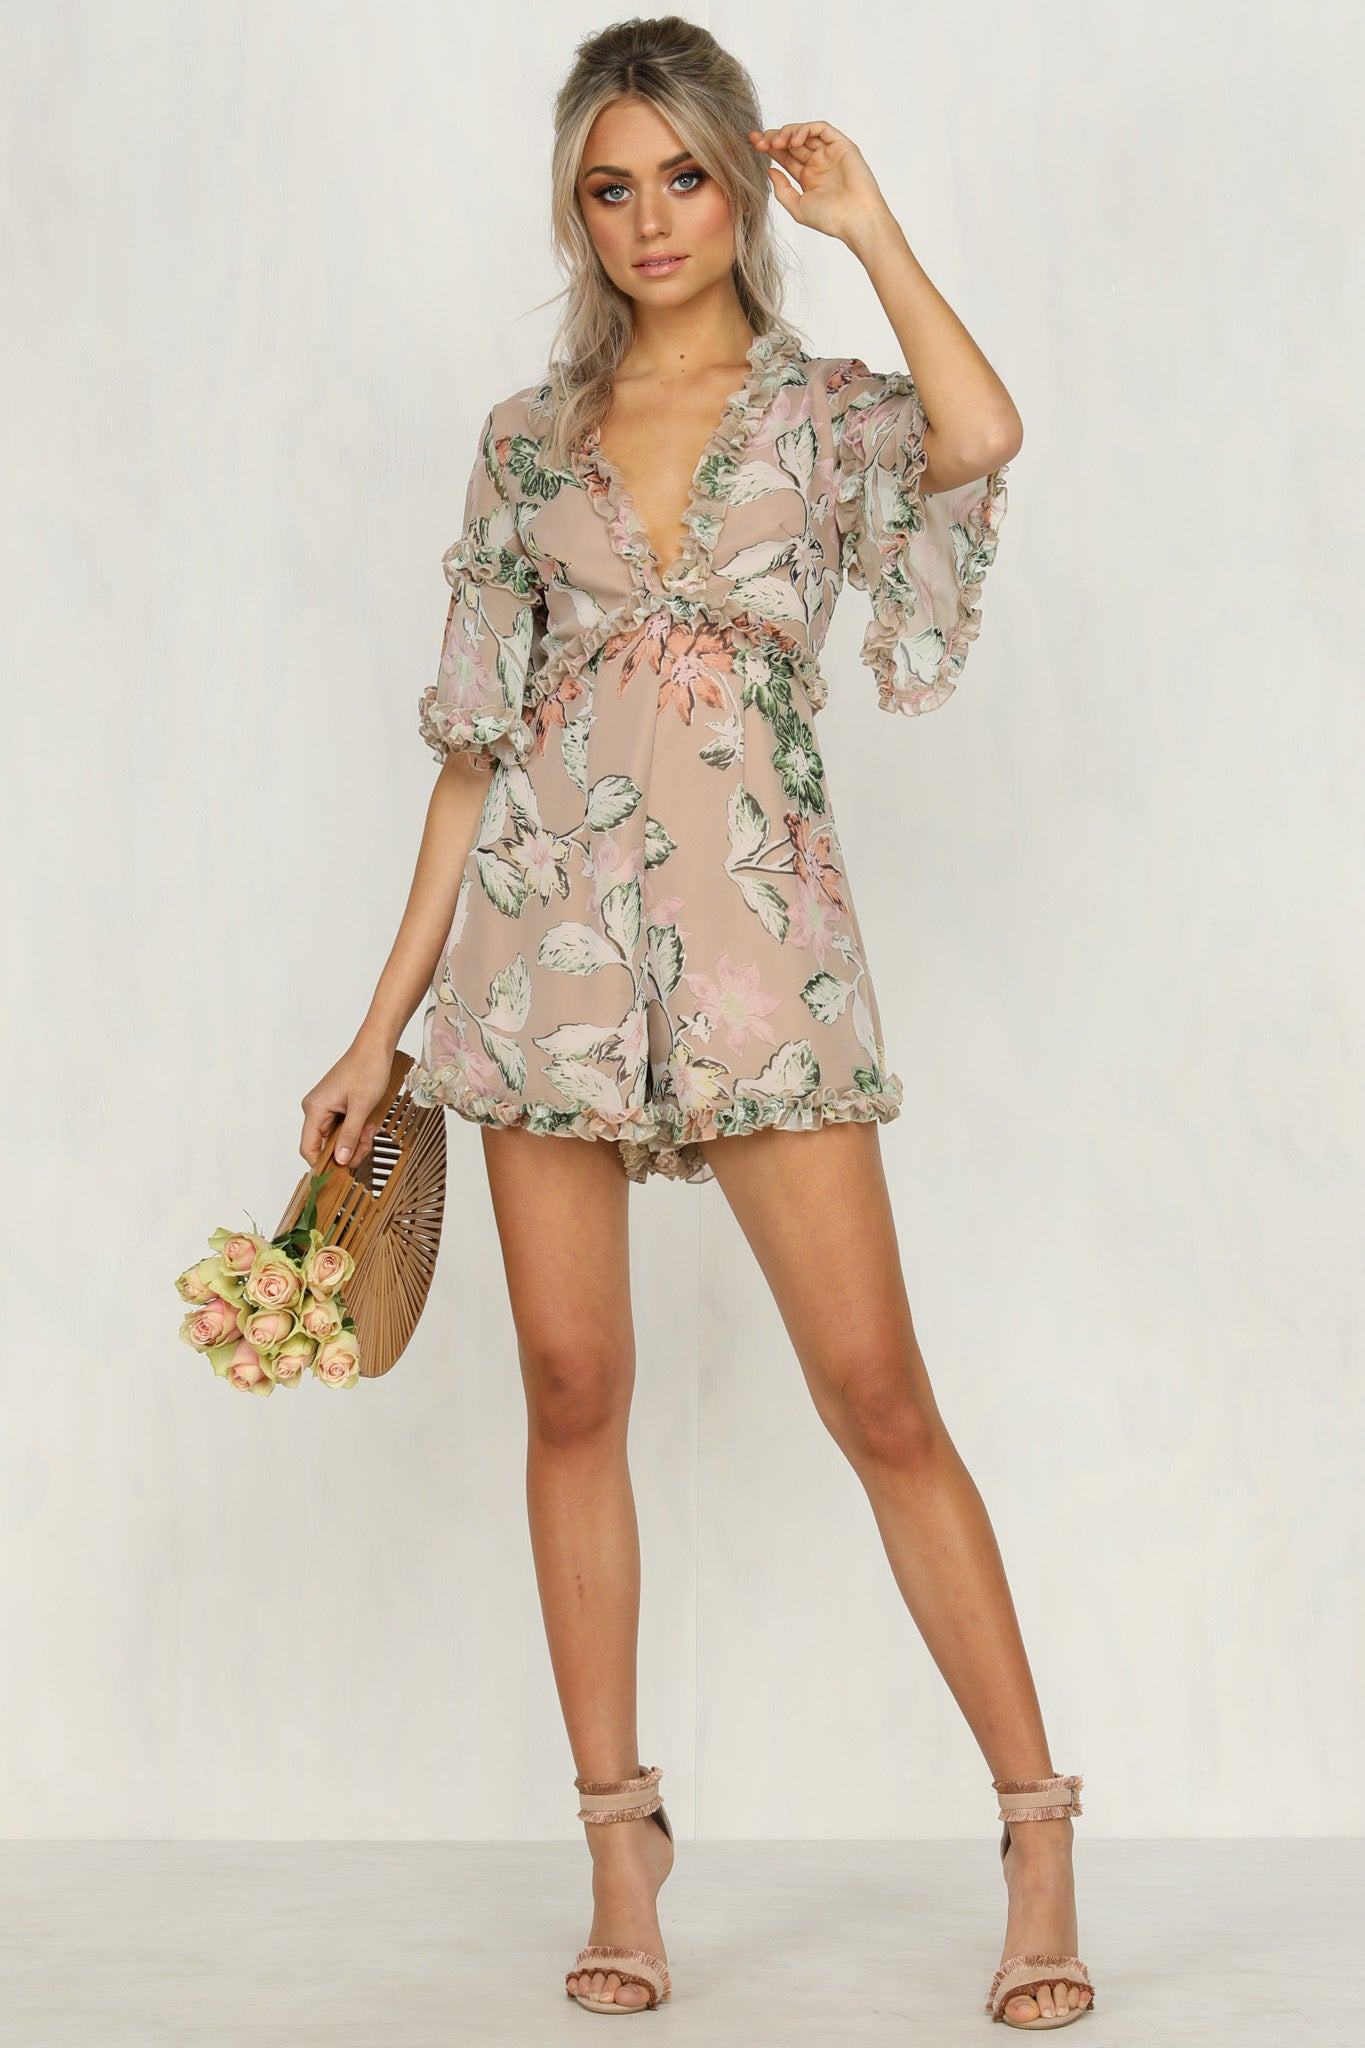 Visalia Playsuit